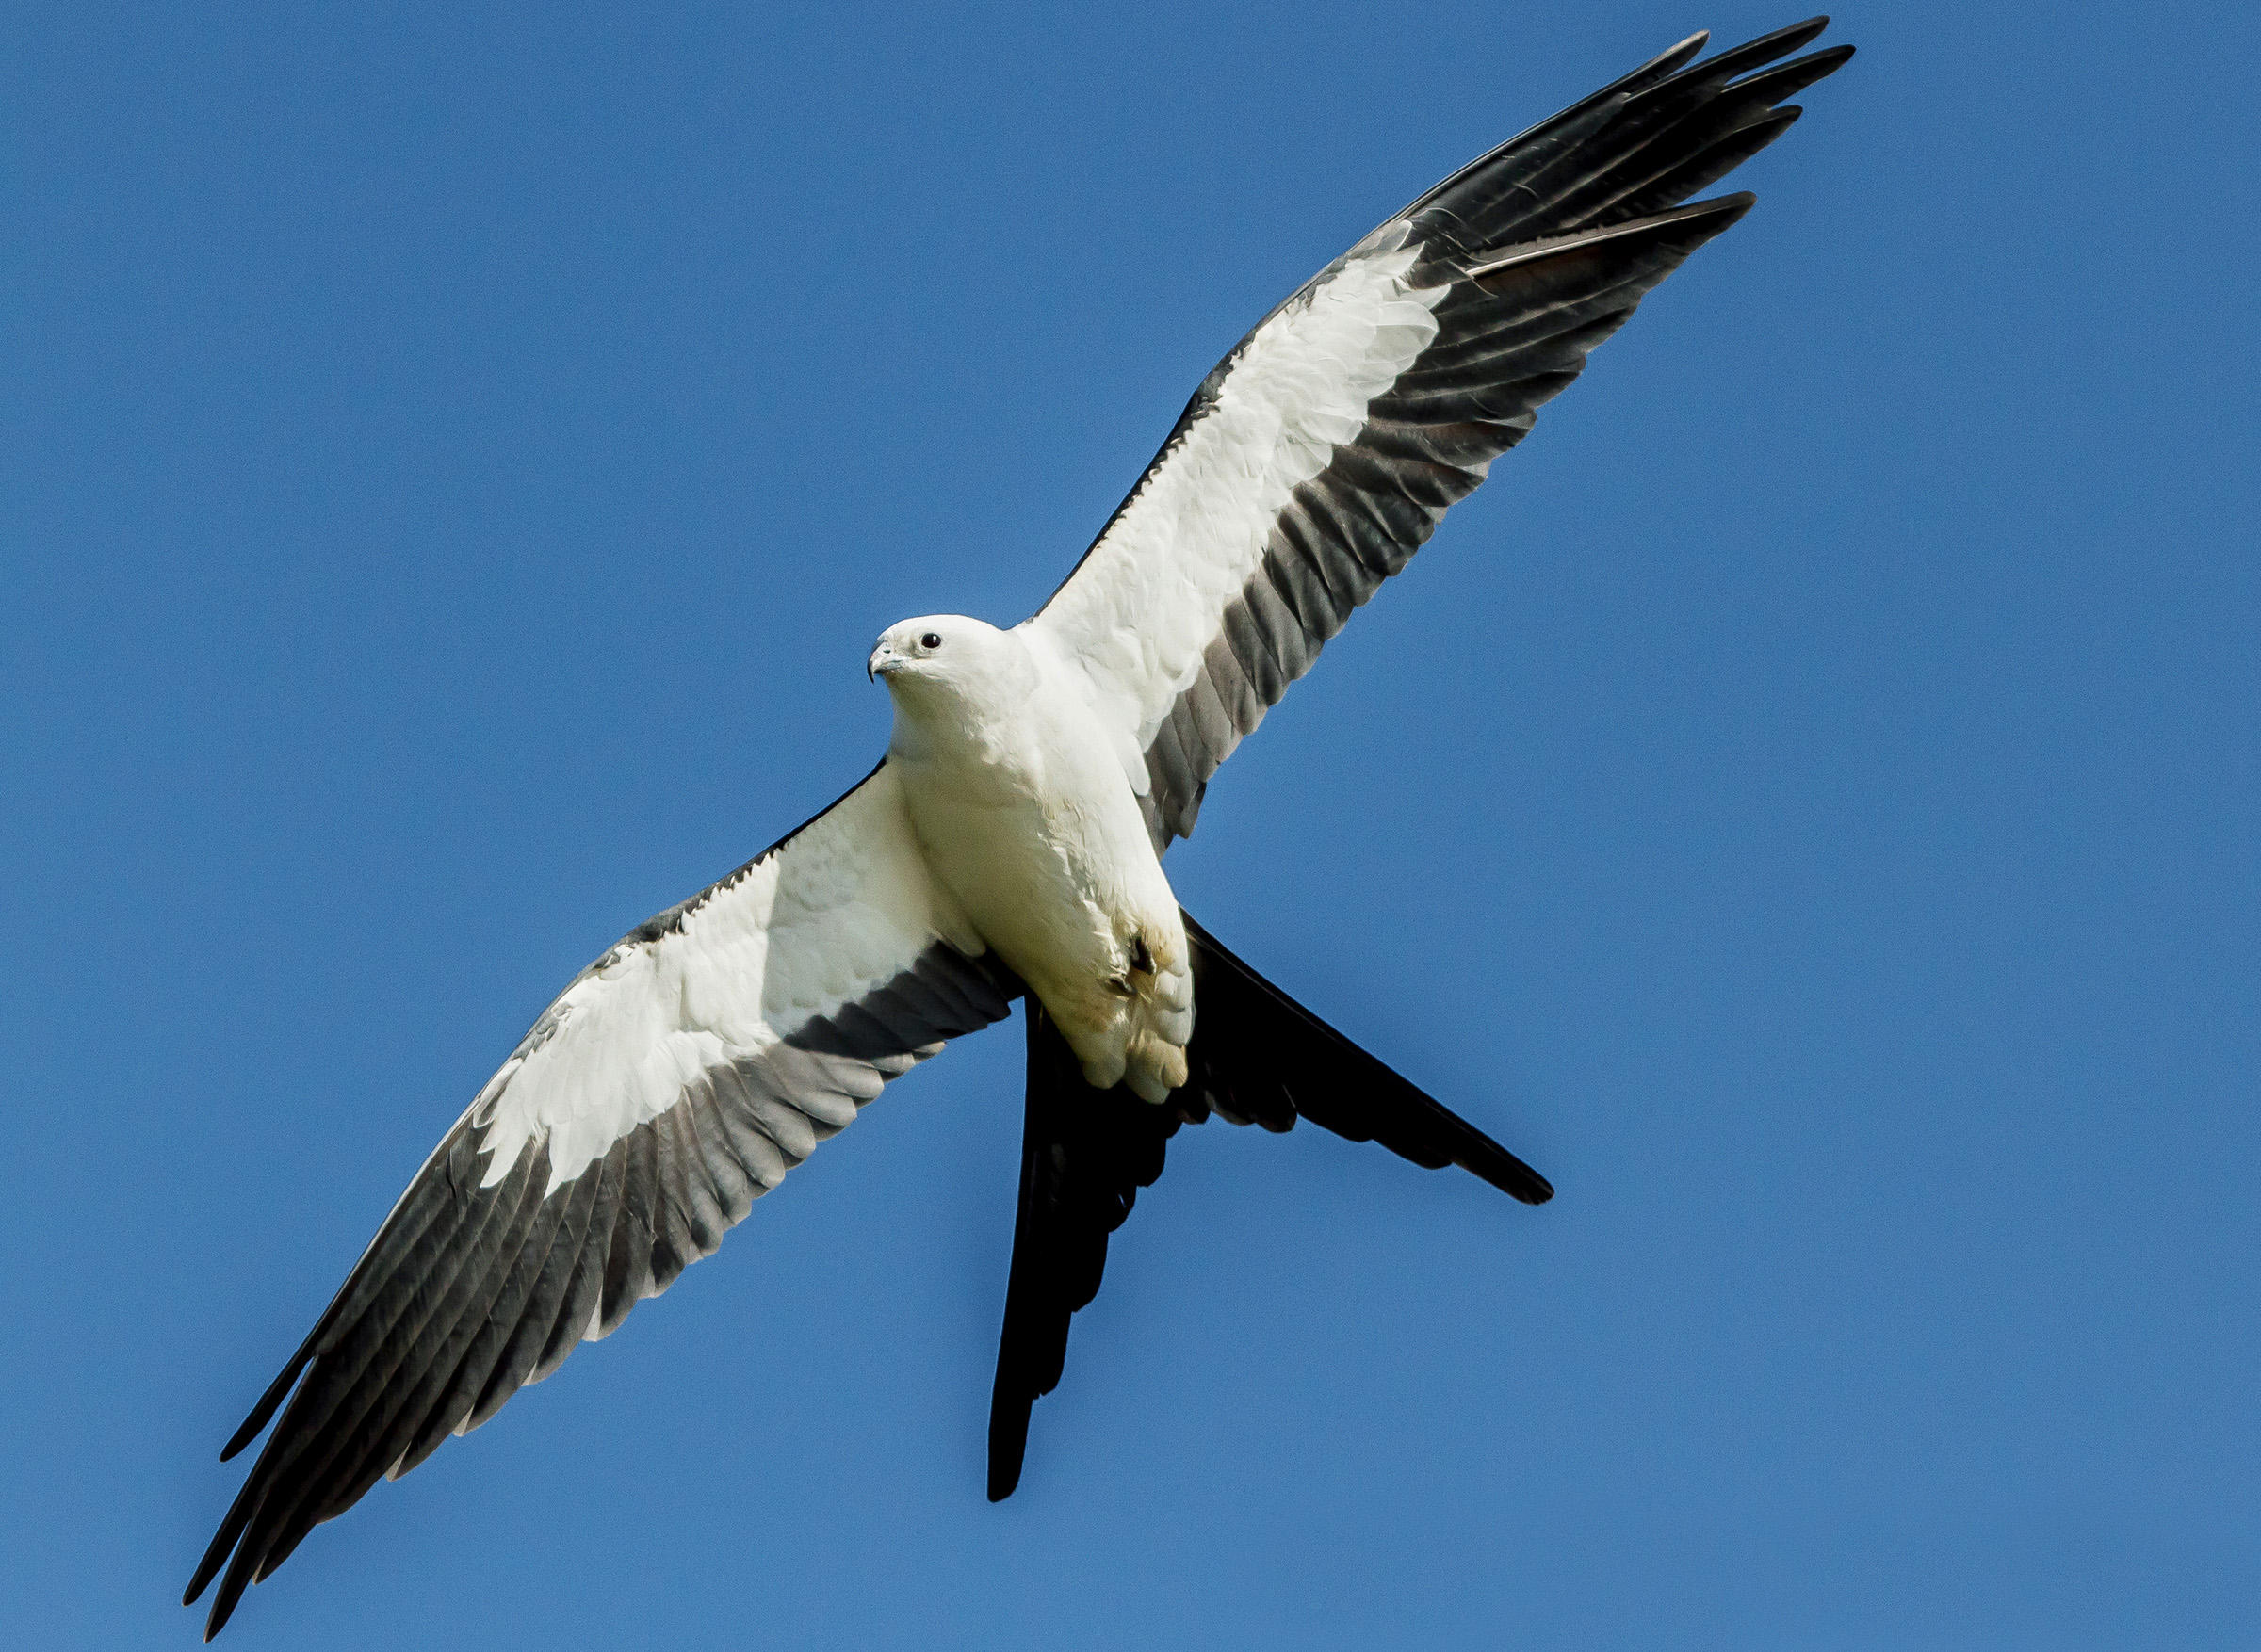 Swallow-tailed_Kite_AndyMorffew_FlickrCC_314